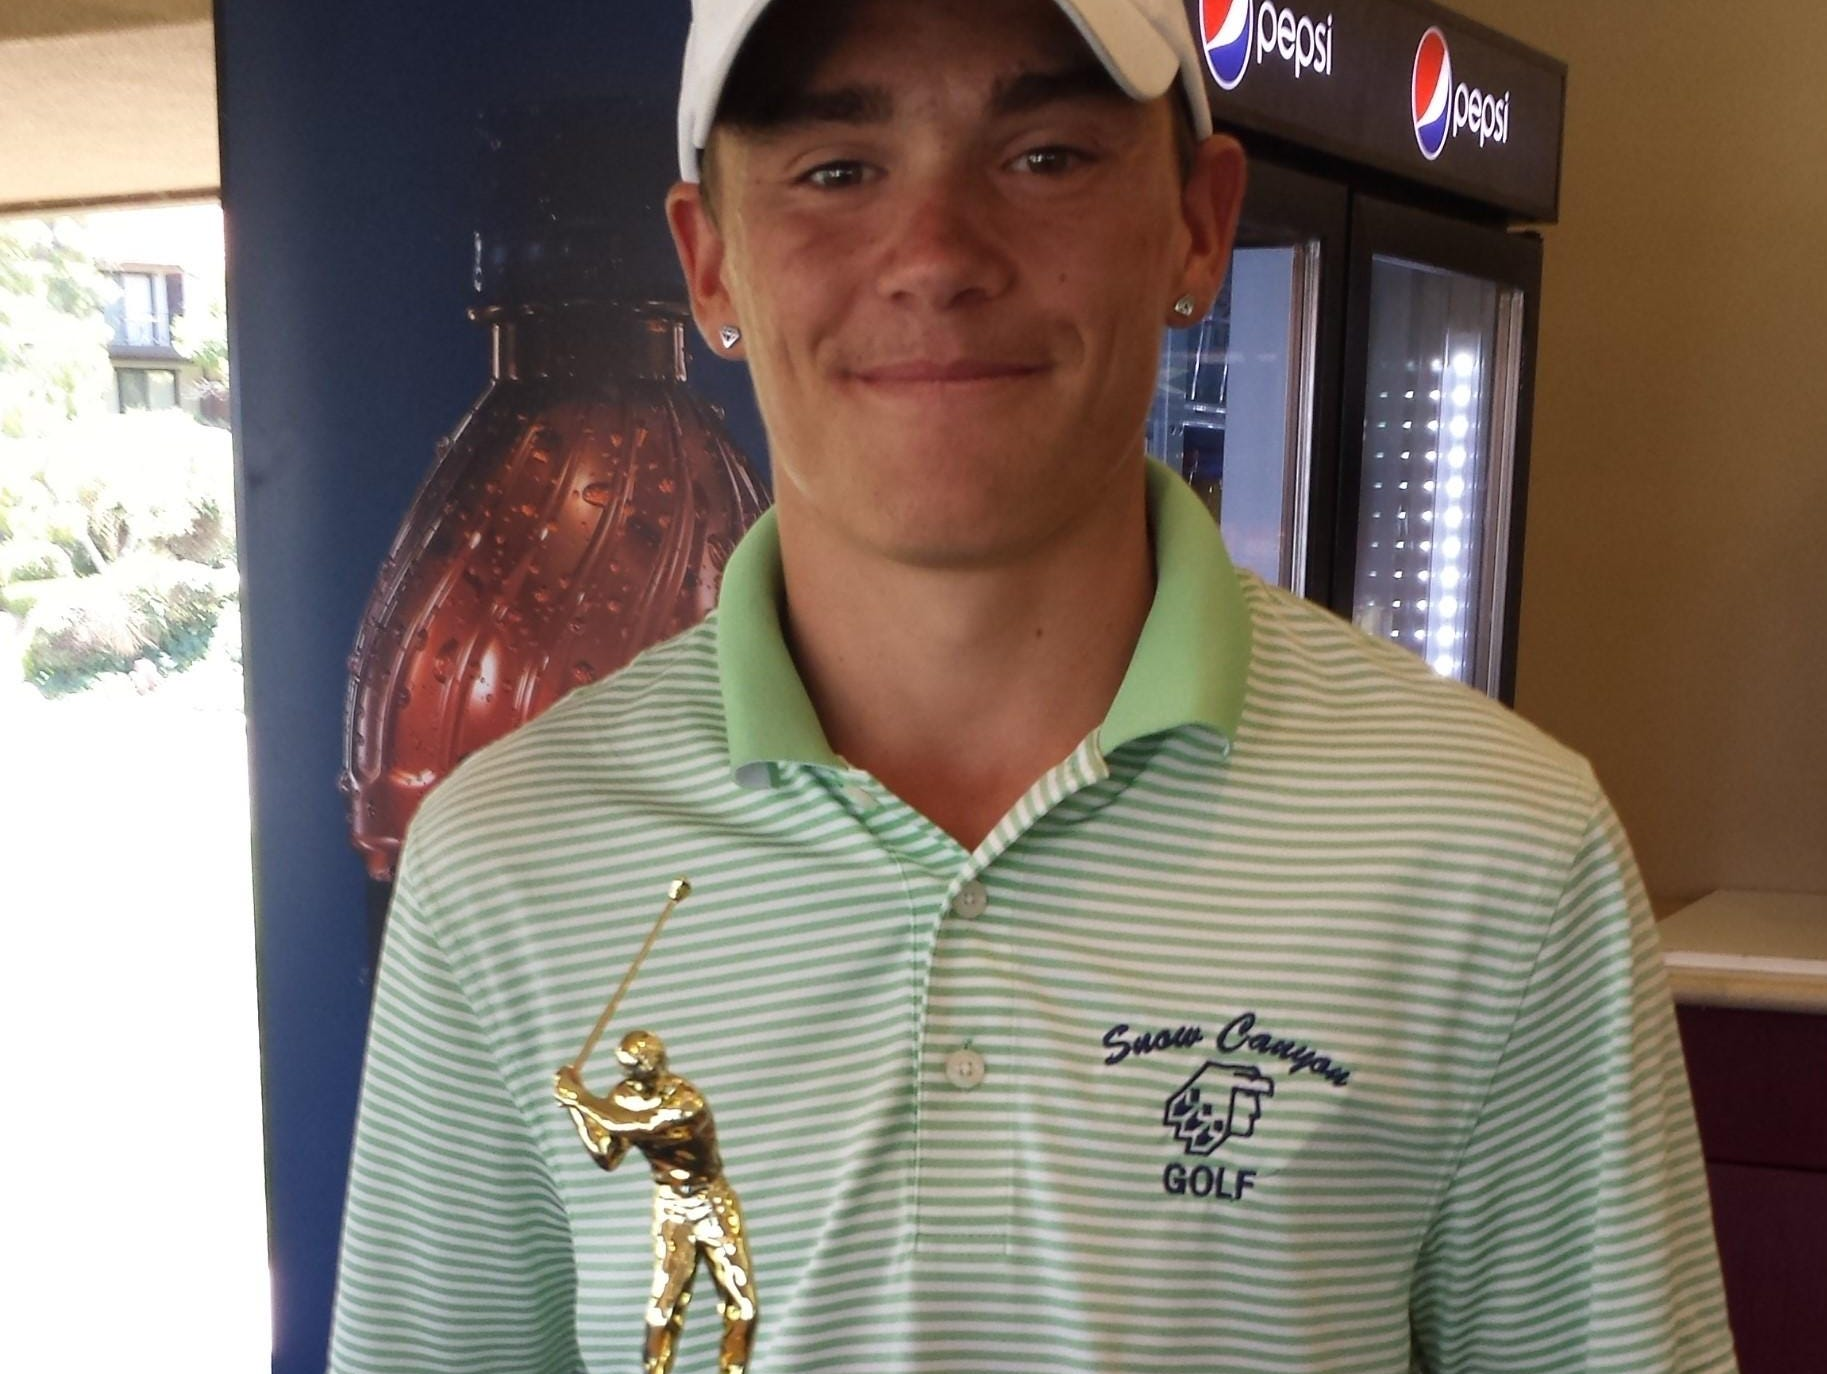 Snow Canyon's Brodey Payzant took home top honors after shooting 2-under par at Southgate Golf Club on Tuesday.